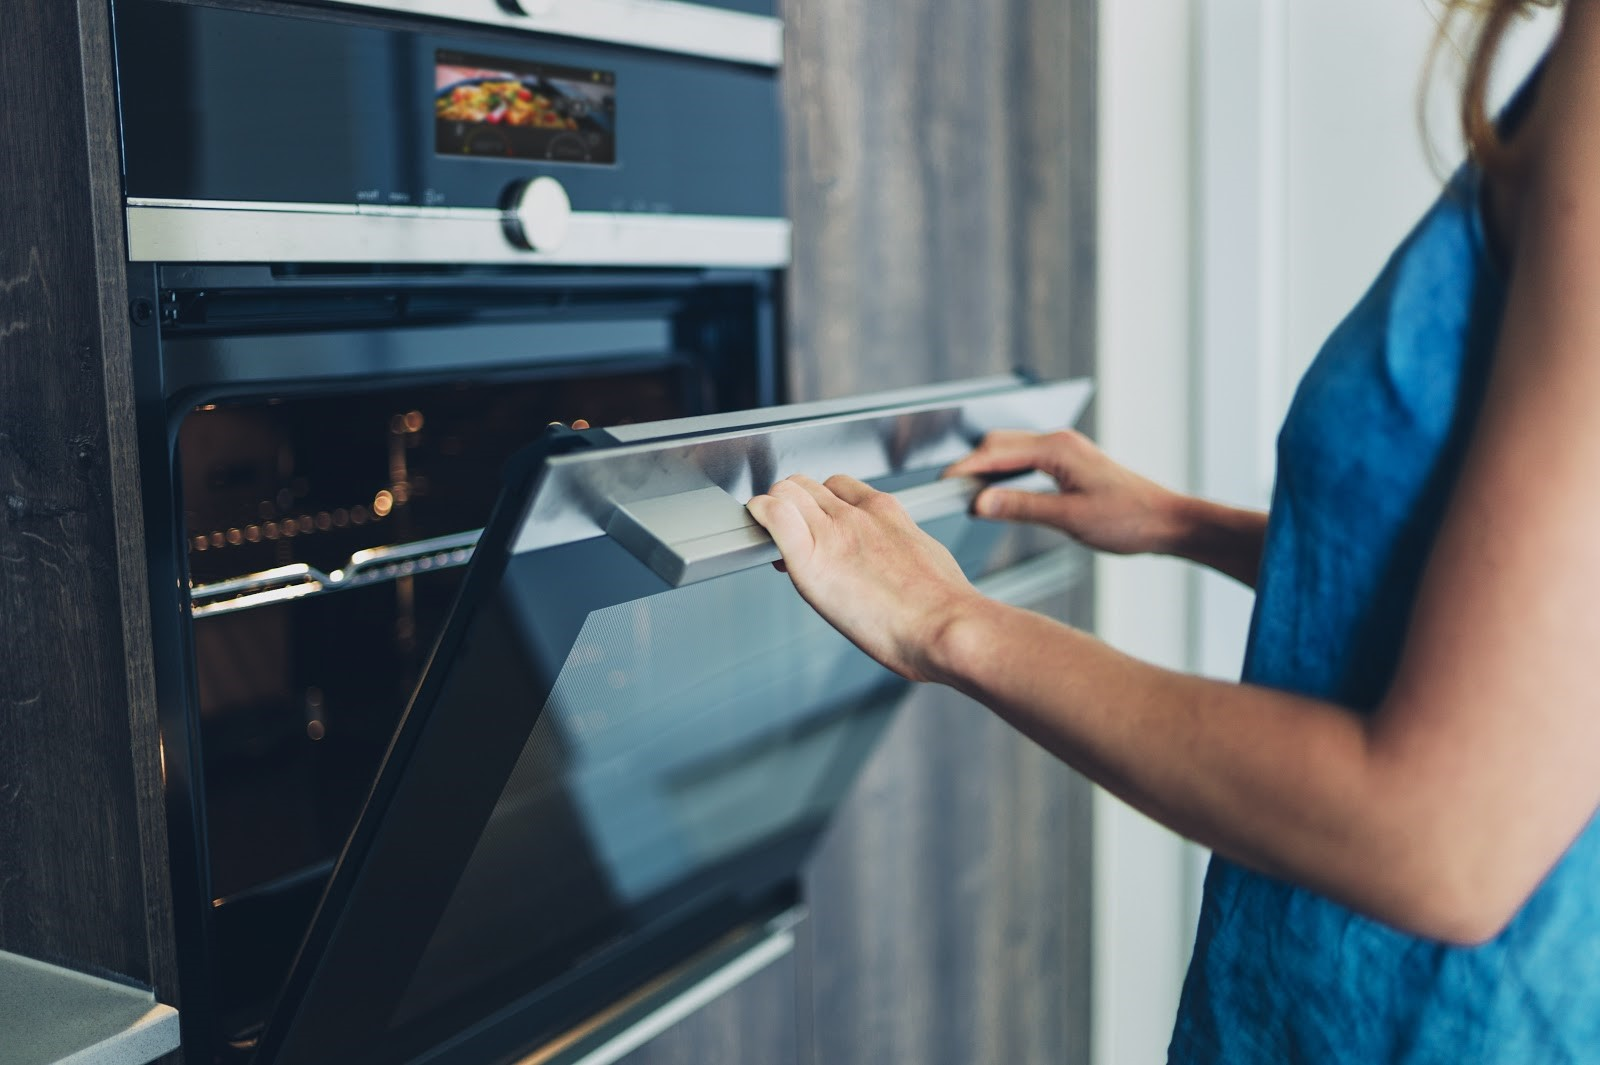 woman using oven with voice activation